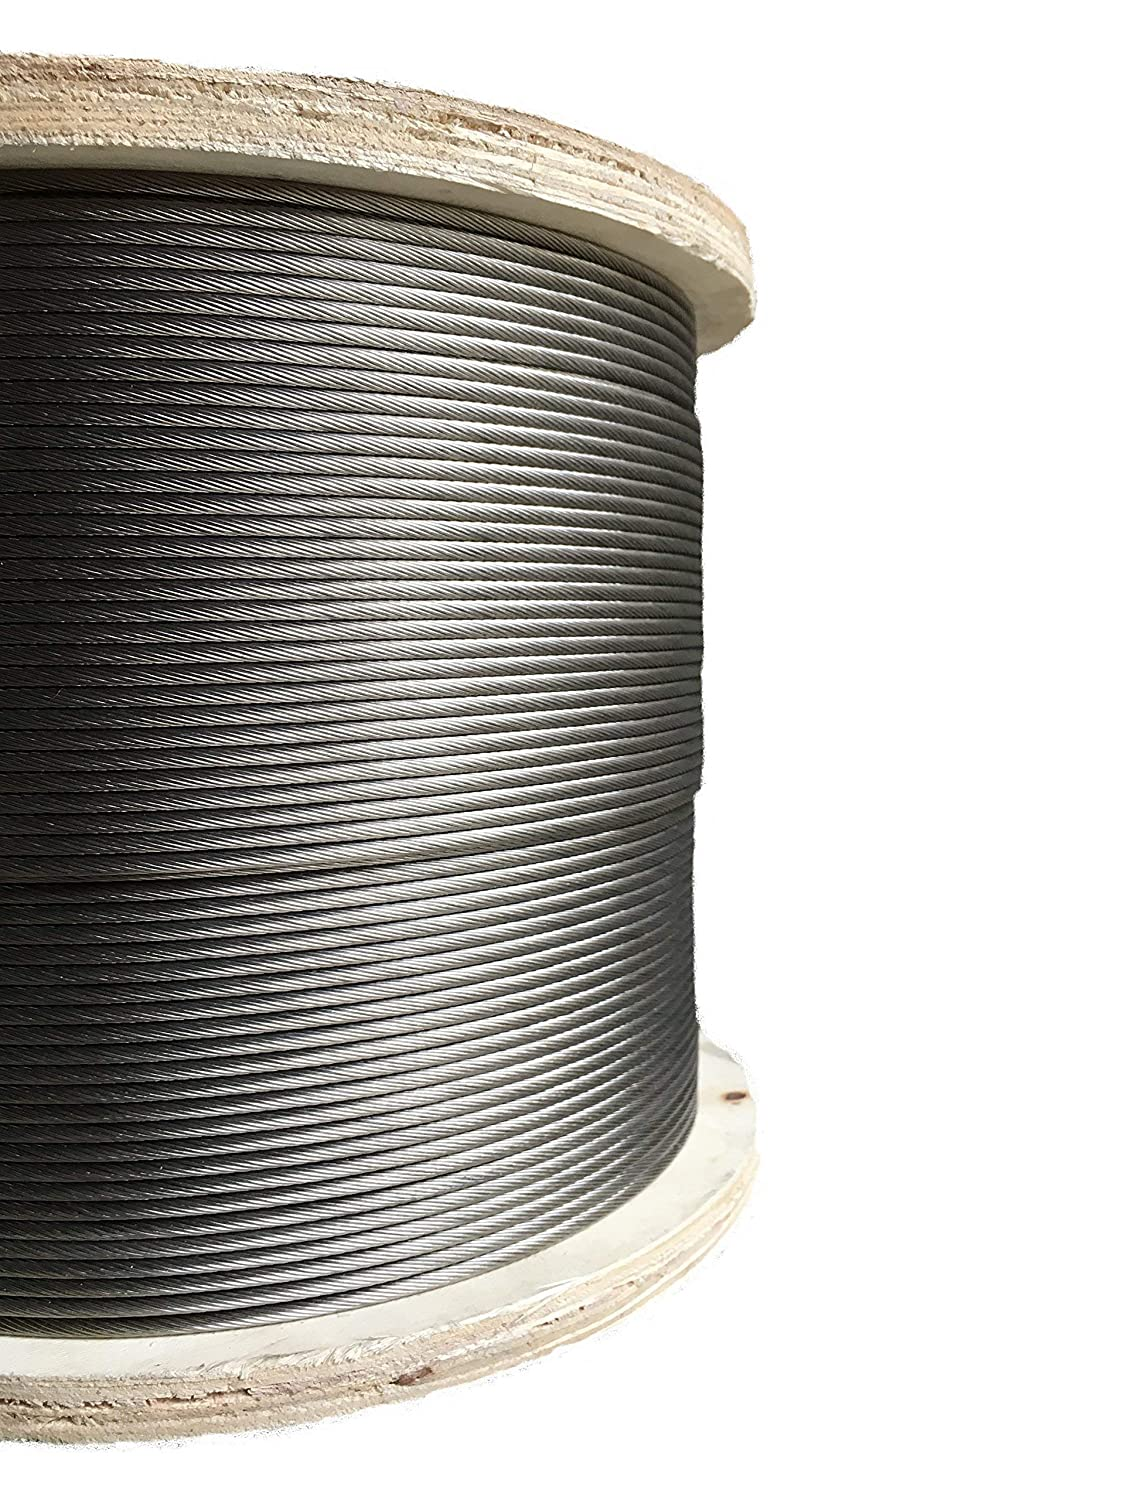 Image of Cable & Wire Rope 1000ft Stainless Steel Aircraft Cable Wire Rope 1/8' 1x19 Marine Grade Type 316 Grade